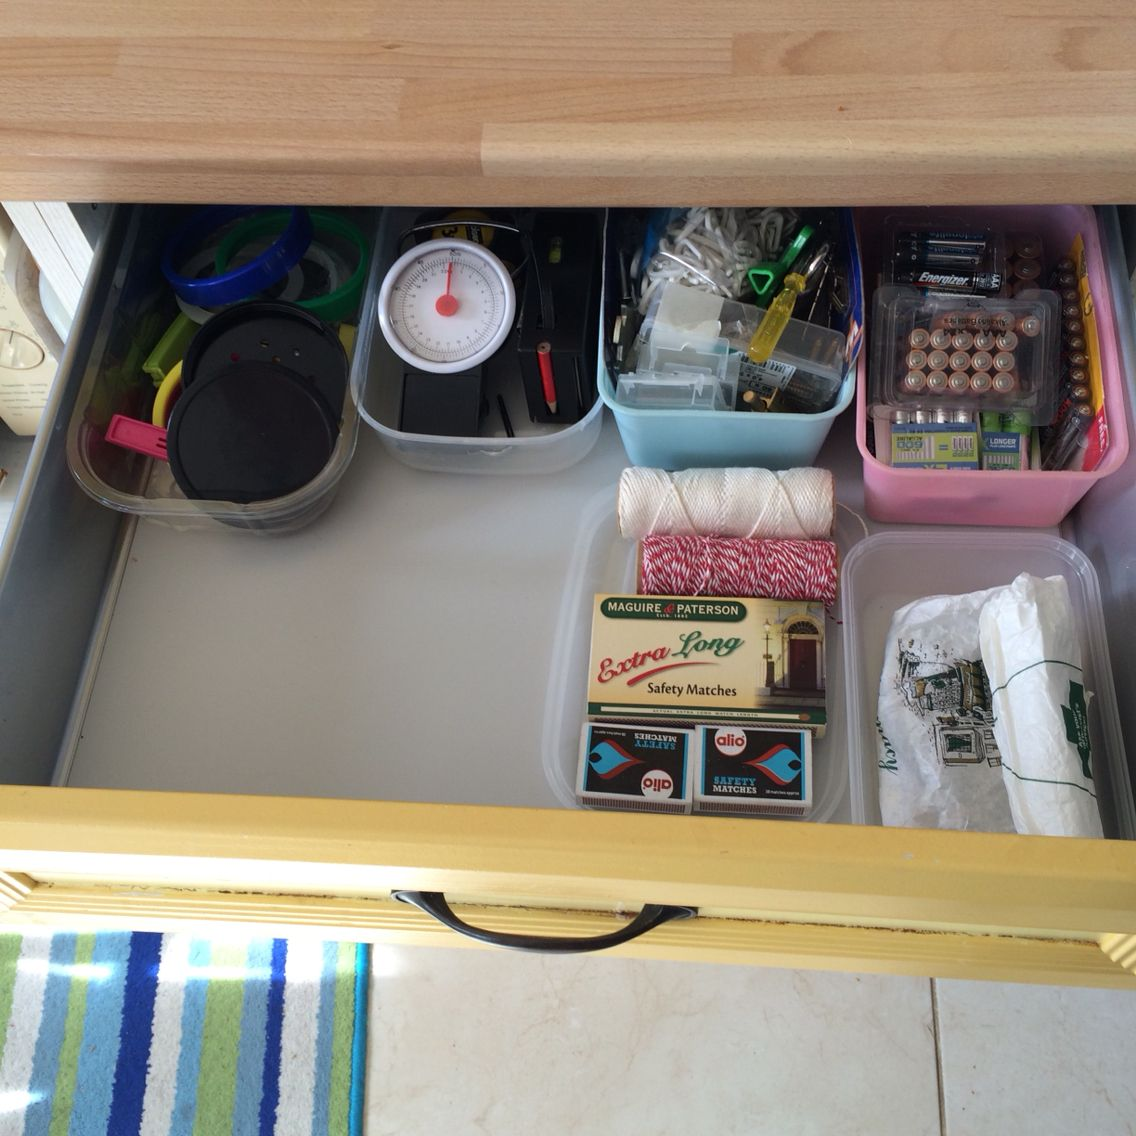 marie kondo style messy drawer in our kitchen. Black Bedroom Furniture Sets. Home Design Ideas